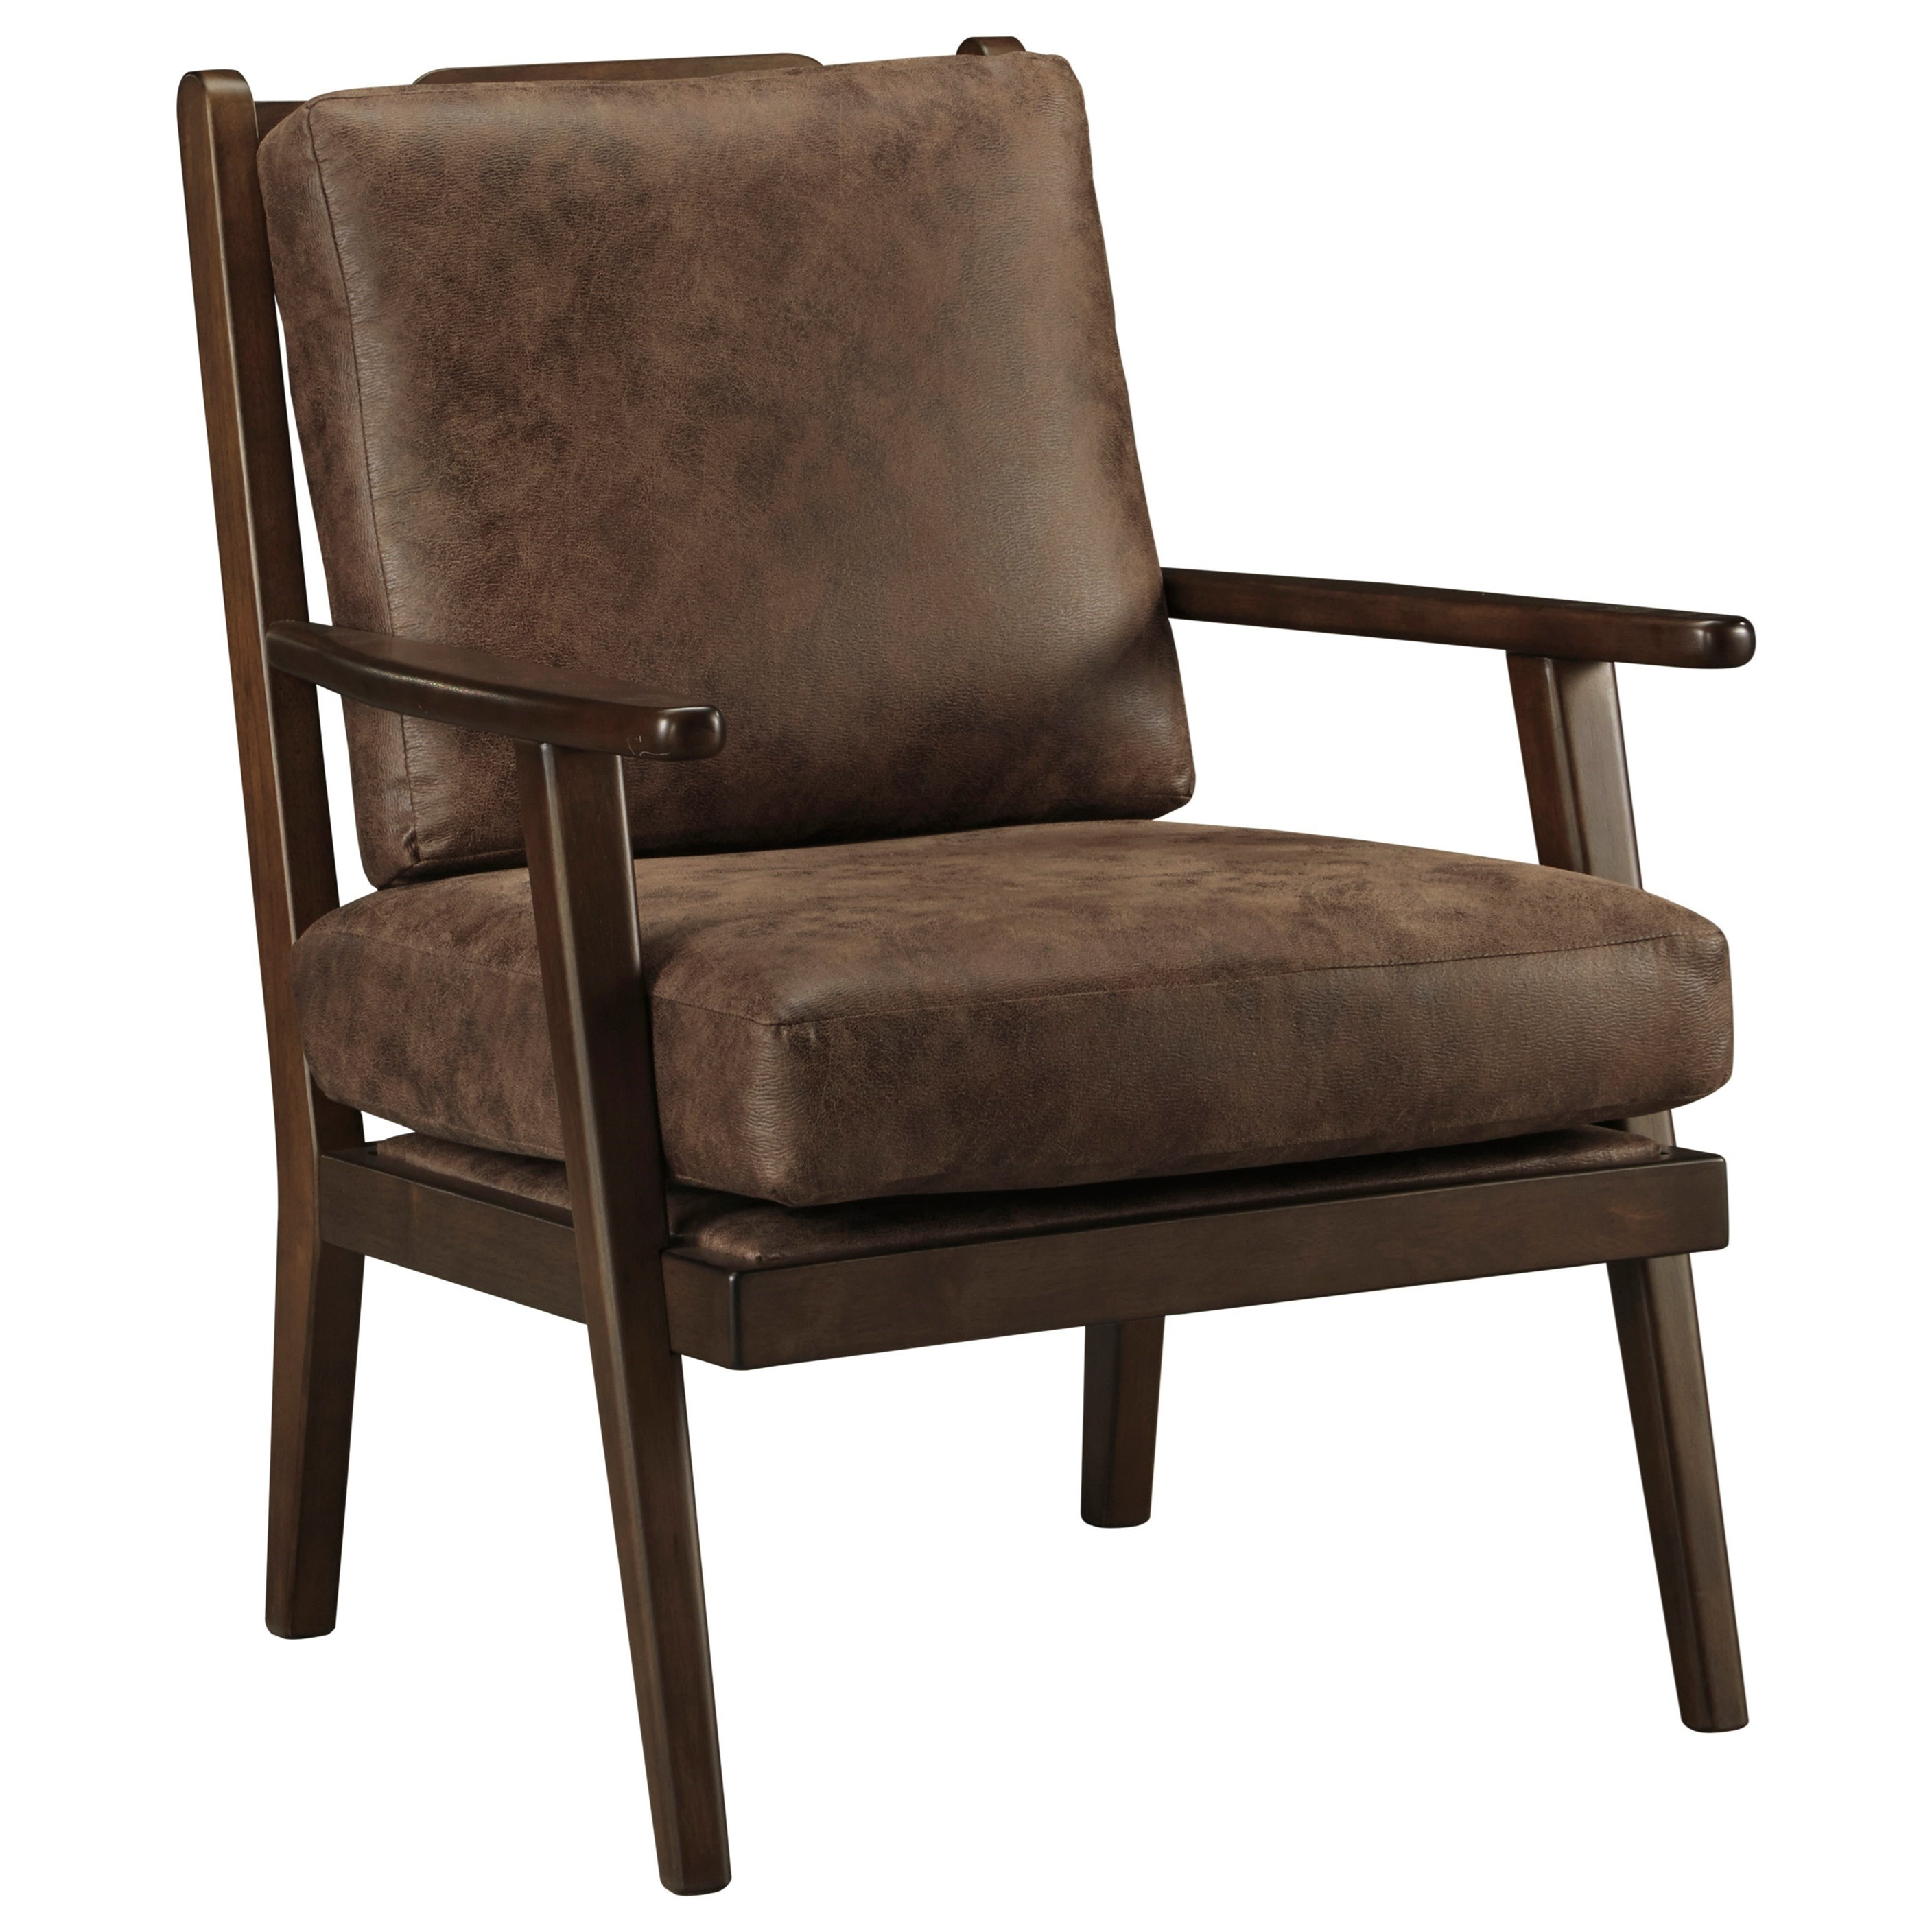 wood frame accent chairs. Accent Chair With Wood Frame And Slat Back Chairs W